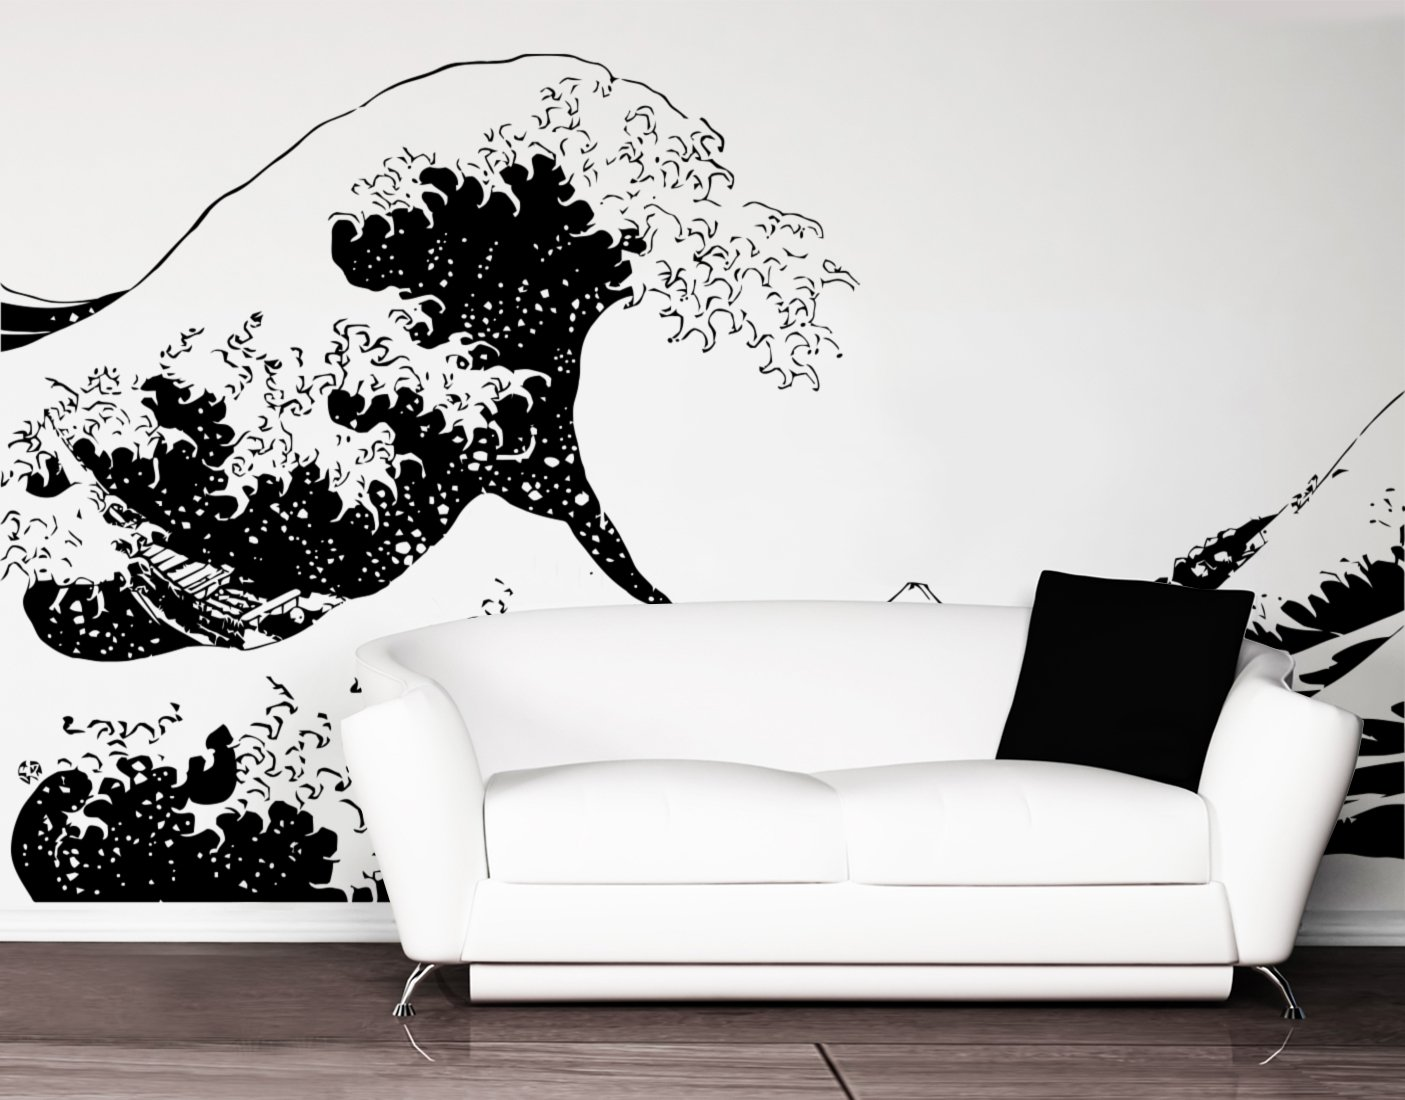 Amazoncom Stickerbrand Asian Décor Vinyl Wall Art Japanese - How do you put up vinyl wall decals